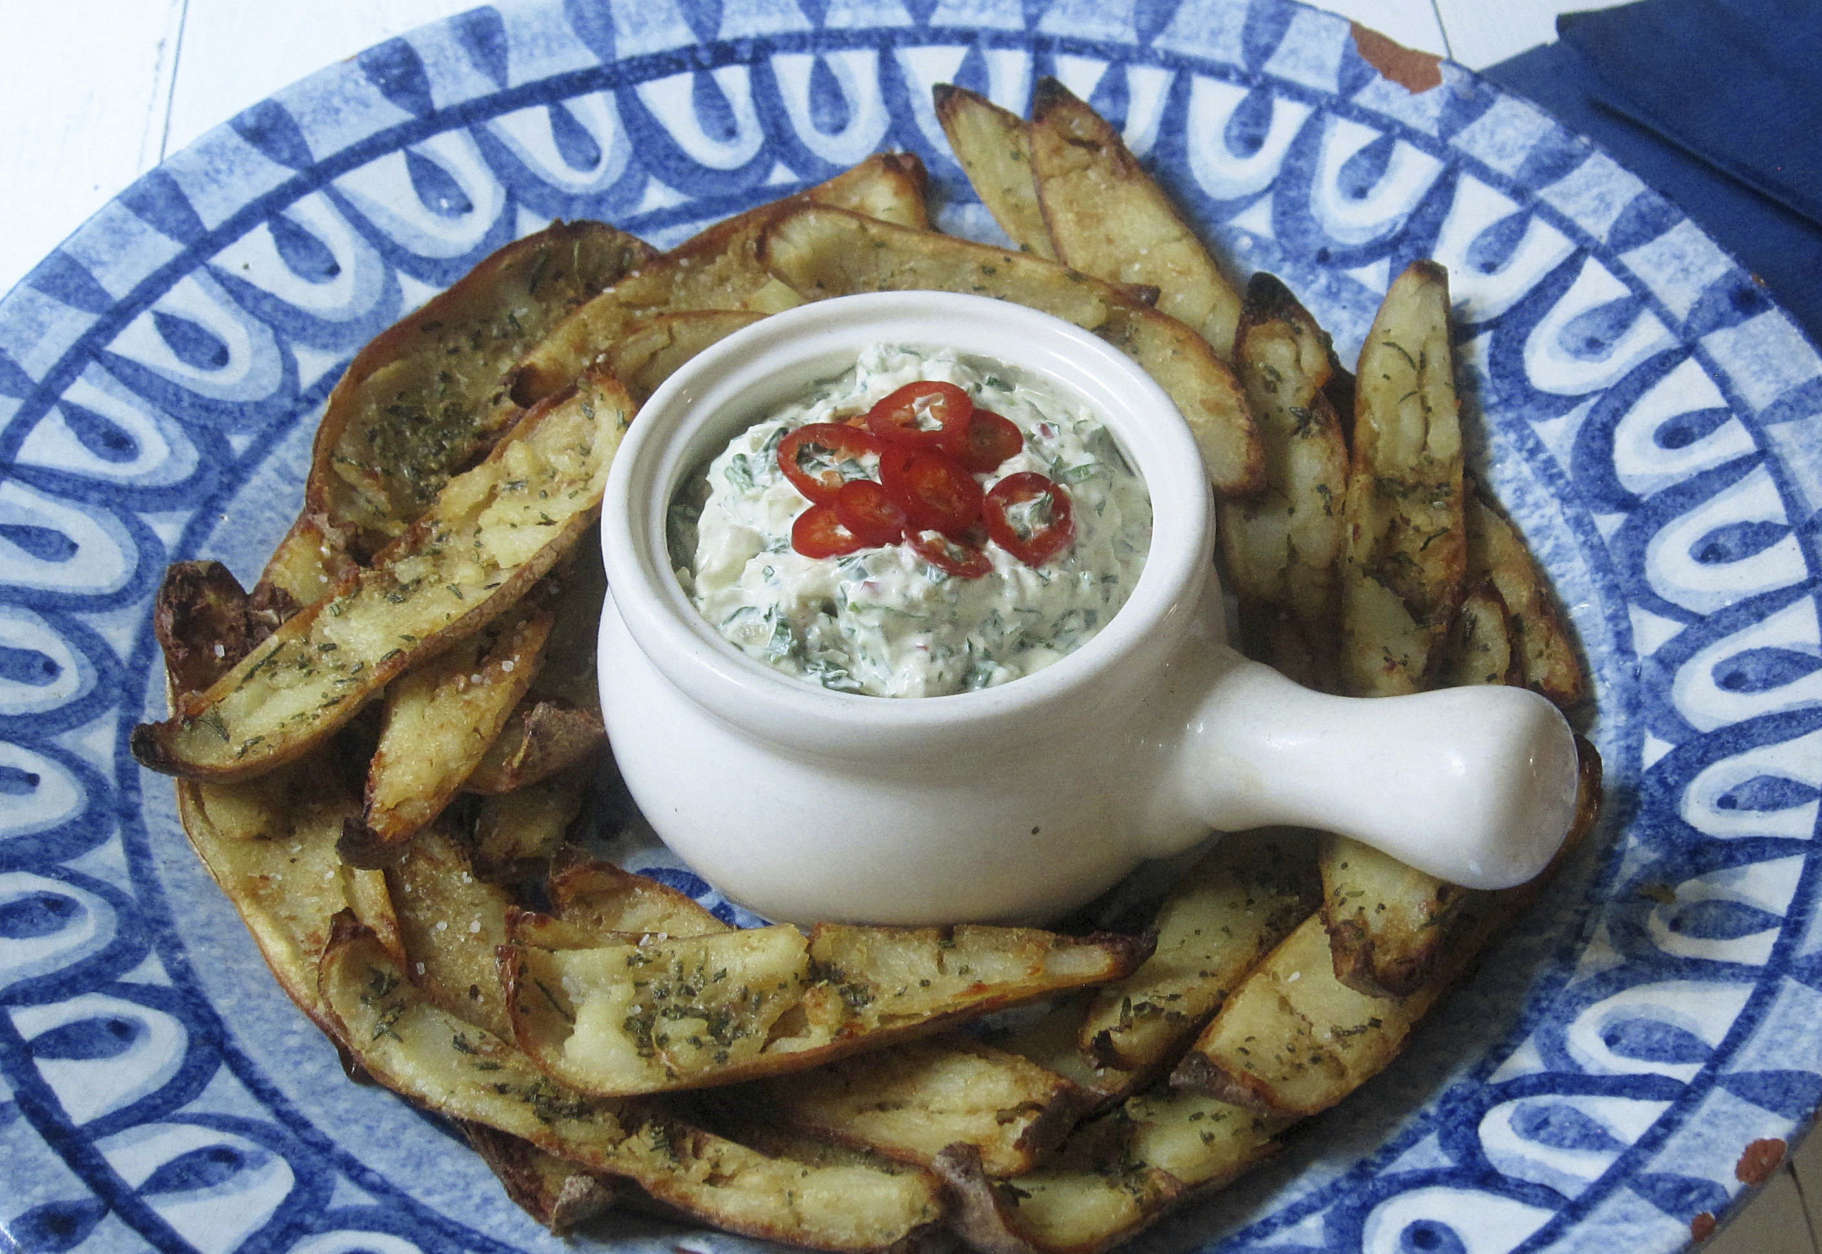 """This Jan. 9 2018 photo shows potato skins baked with roasted garlic rosemary butter and an onion kale dip spiked with fresh chiles. This dish is from the recipe """"Decadent Snacks for the Super Bowl"""" by Sara Moulton. (Sara Moulton via AP)"""